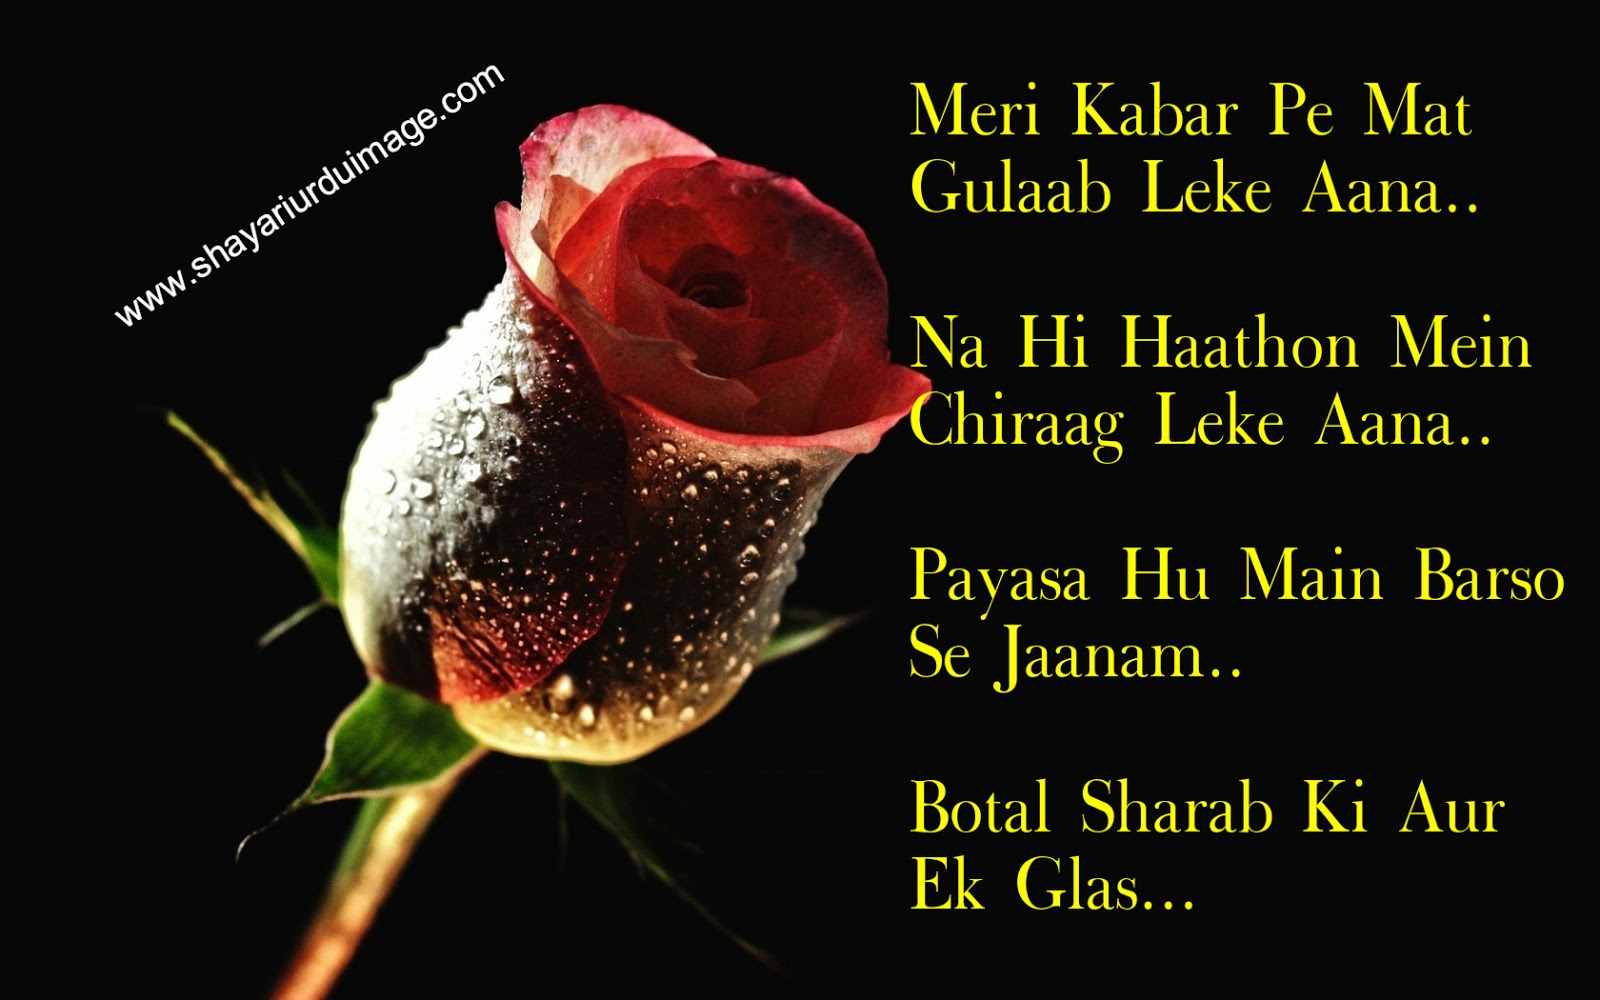 Shayari Urdu Images,urdu shayari with picture,urdu shayari wallpaper,love shayari urdu,sad love ...